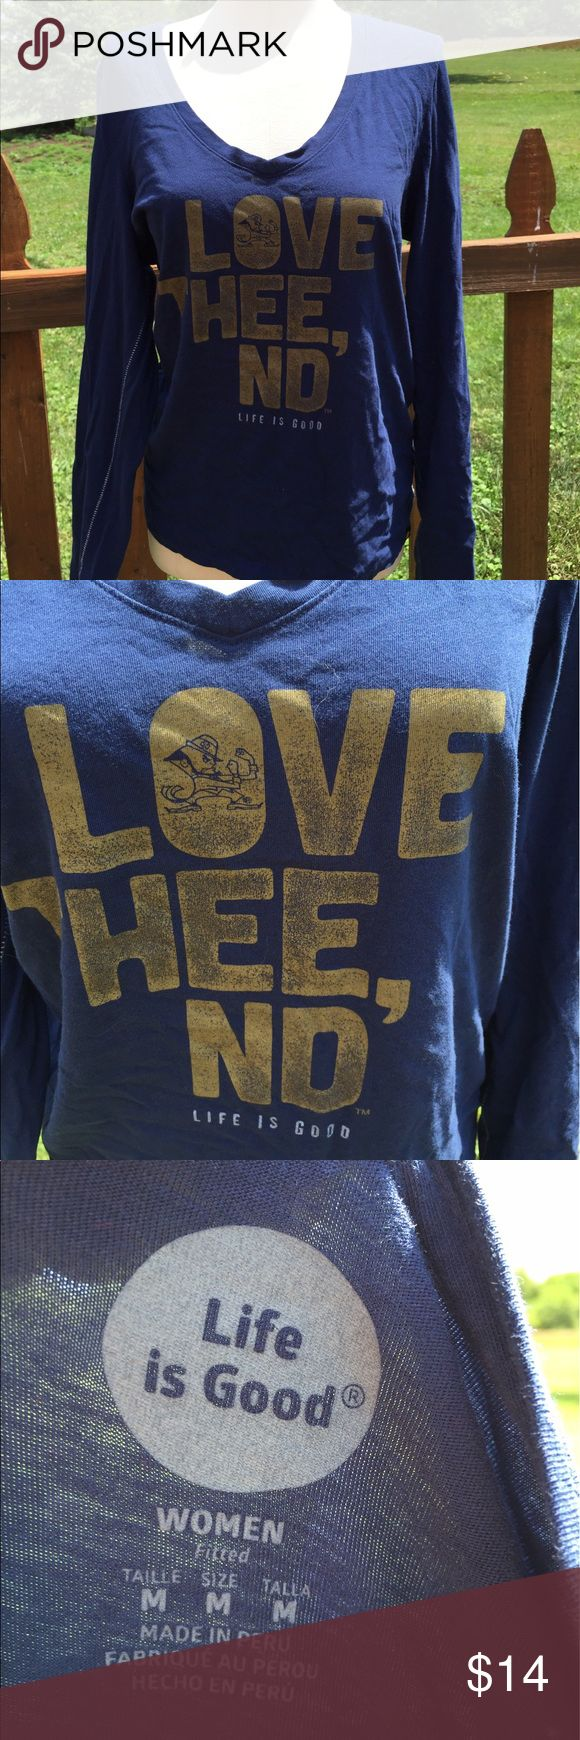 Life is Good Notre Dame Shirt Size Medium Size medium. Super gently preowned. Be sure to view the other items in our closet. We offer  women's, Mens and kids items in a variety of sizes. Bundle and save!! We love reasonable offers!! Thank you for viewing our item!! Life is Good Tops